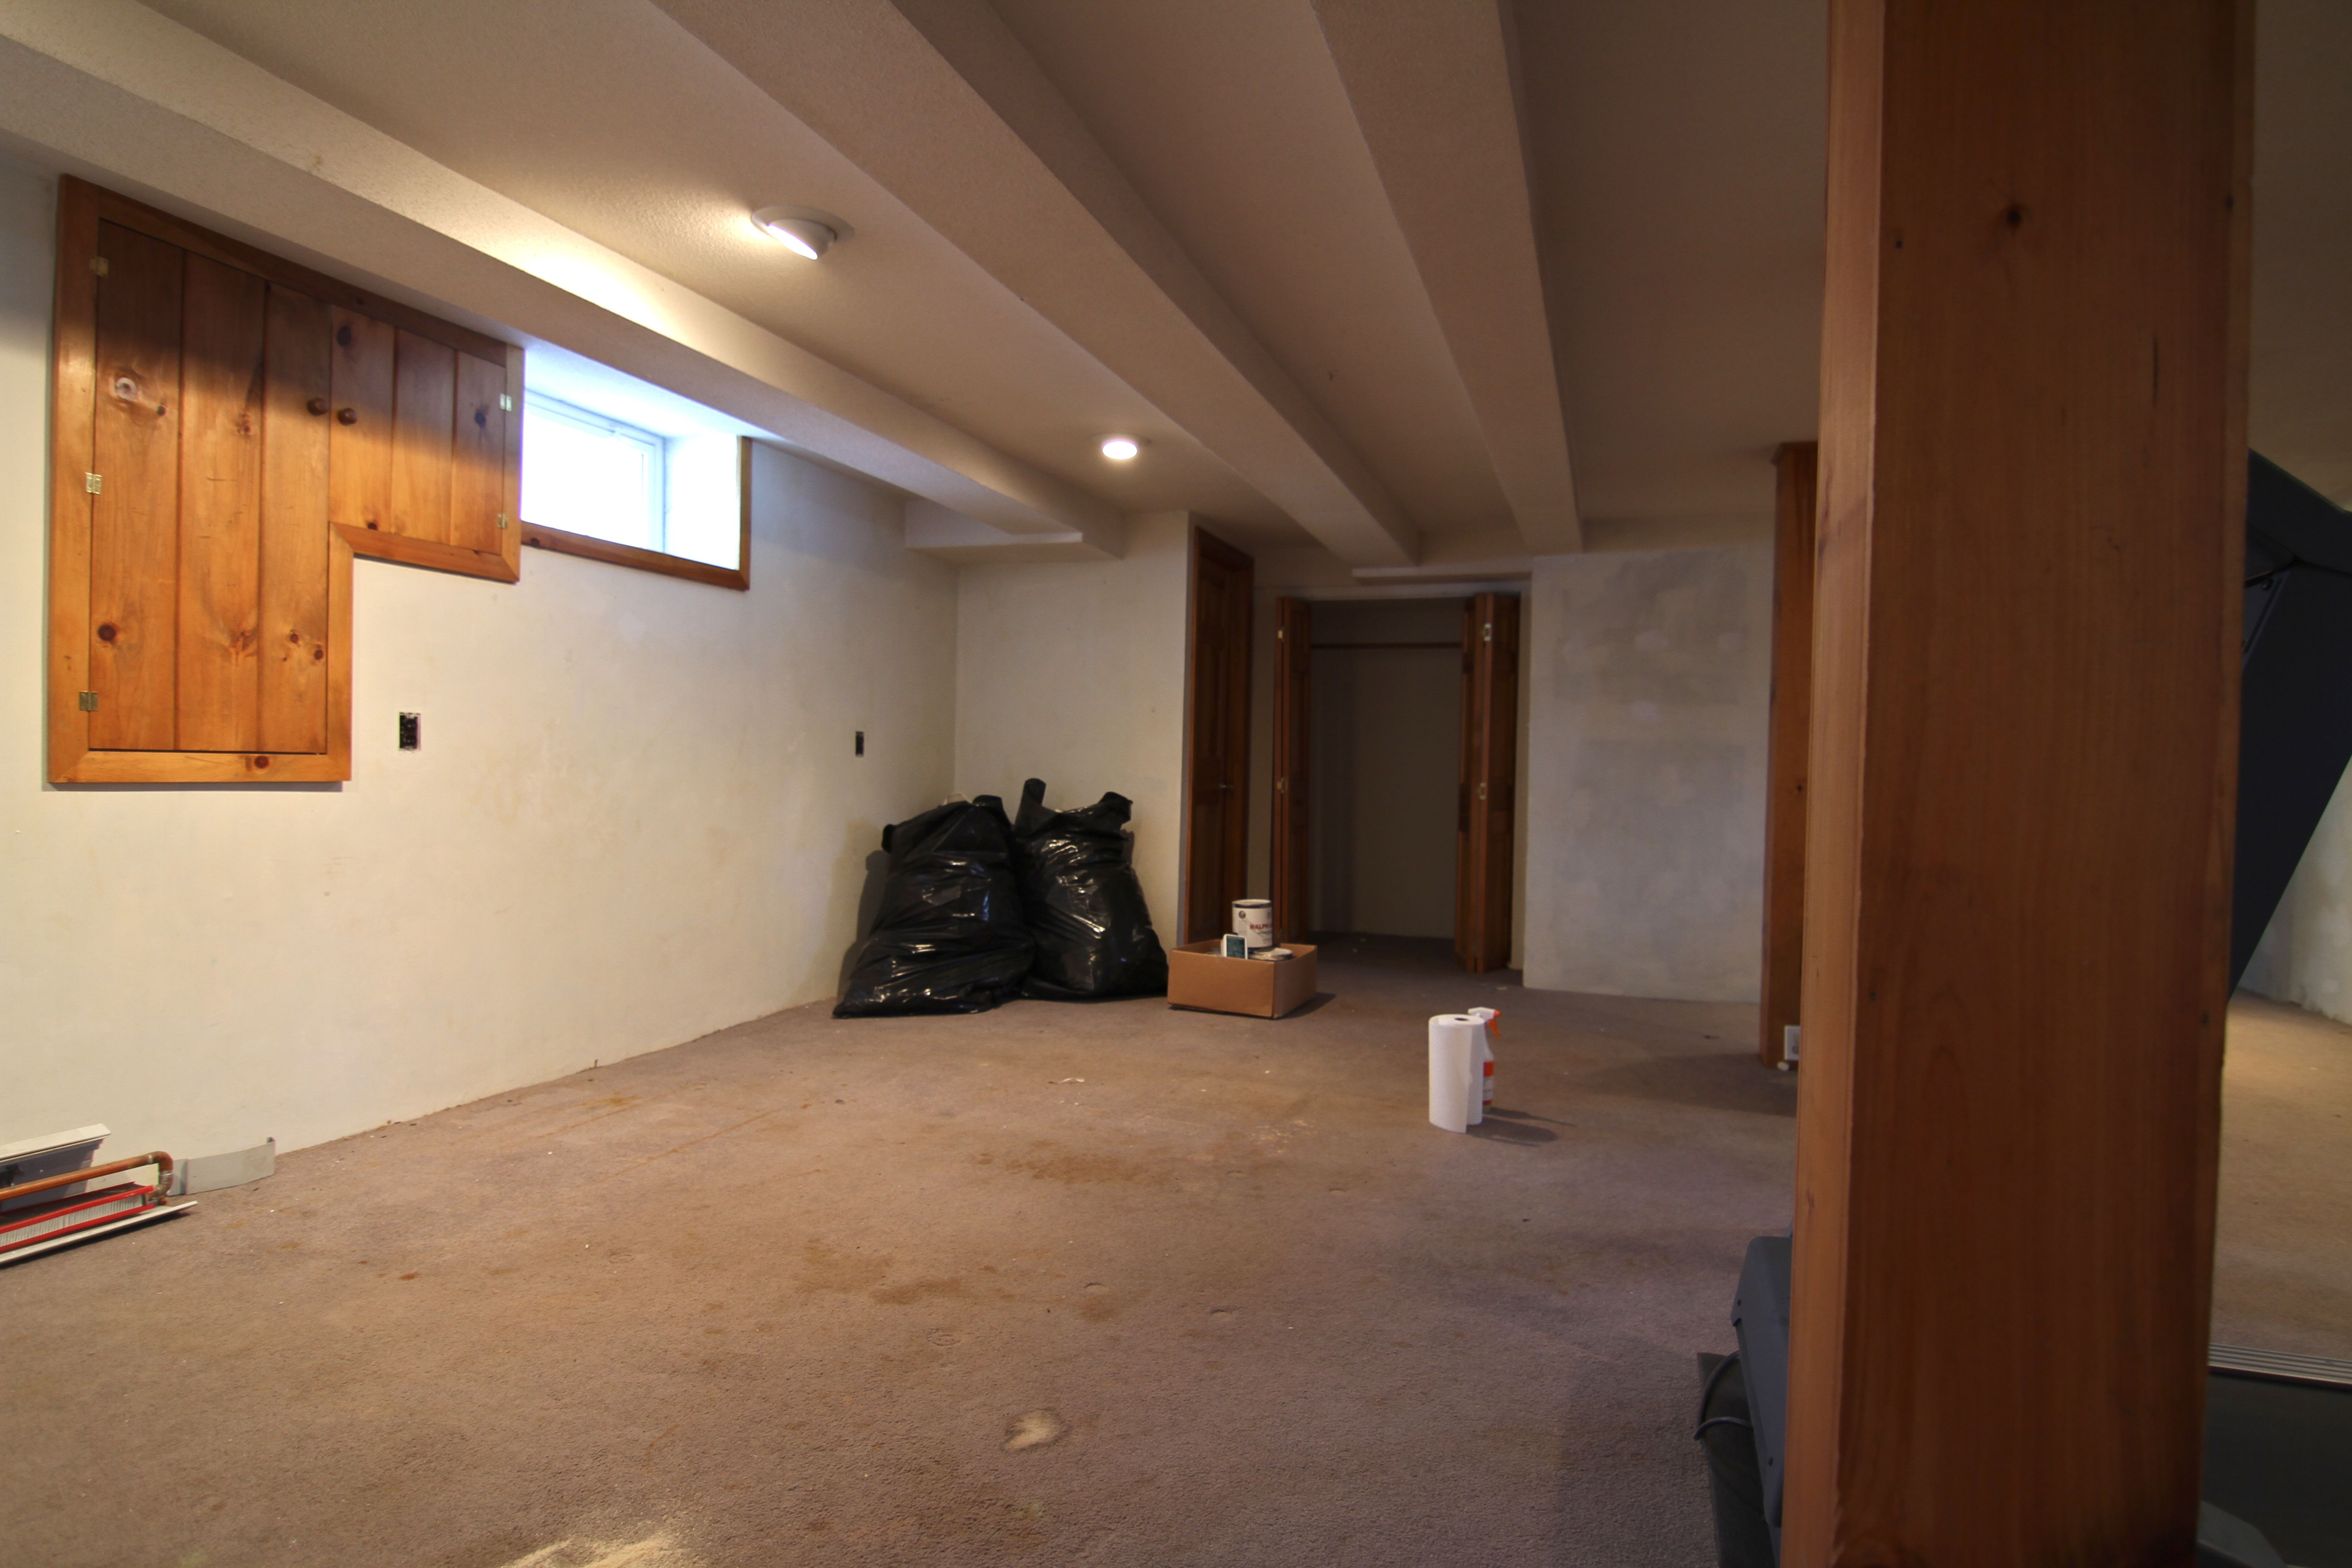 BEFORE: When we bought the house there was a crusty-old sofa that was rusting away in this area of the room. The stains throughout the space were equally non-mysterious and gross - clearly the carpet was years beyond a simple cleaning as a remedy.